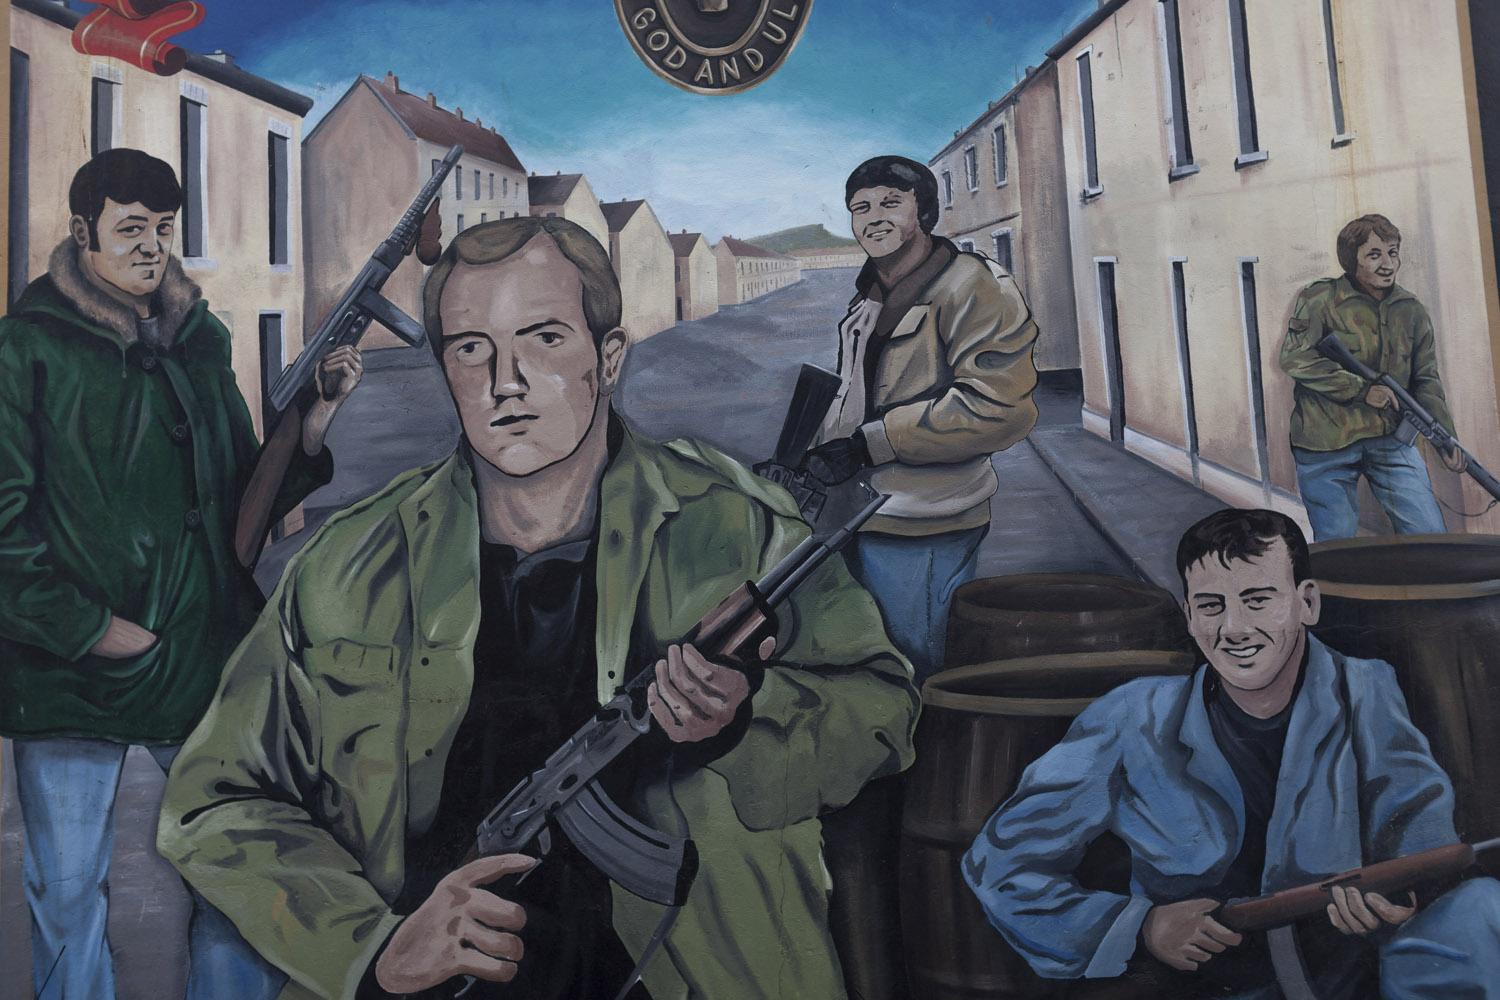 "A loyalist political mural in West Belfast. While Catholic murals are mostly about struggling for freedom, Protestant murals are mostly about defending the community from external attacks, with loyalist paramilitaries depicted as ordinary citizens forced to take up weapons in the face of the threat posed by Irish terrorism. In their opinion, Irish reunification would result in Protestants ""being thrown to the sea"", more than three centuries after they came to Ireland as part of the English colonization of the island."